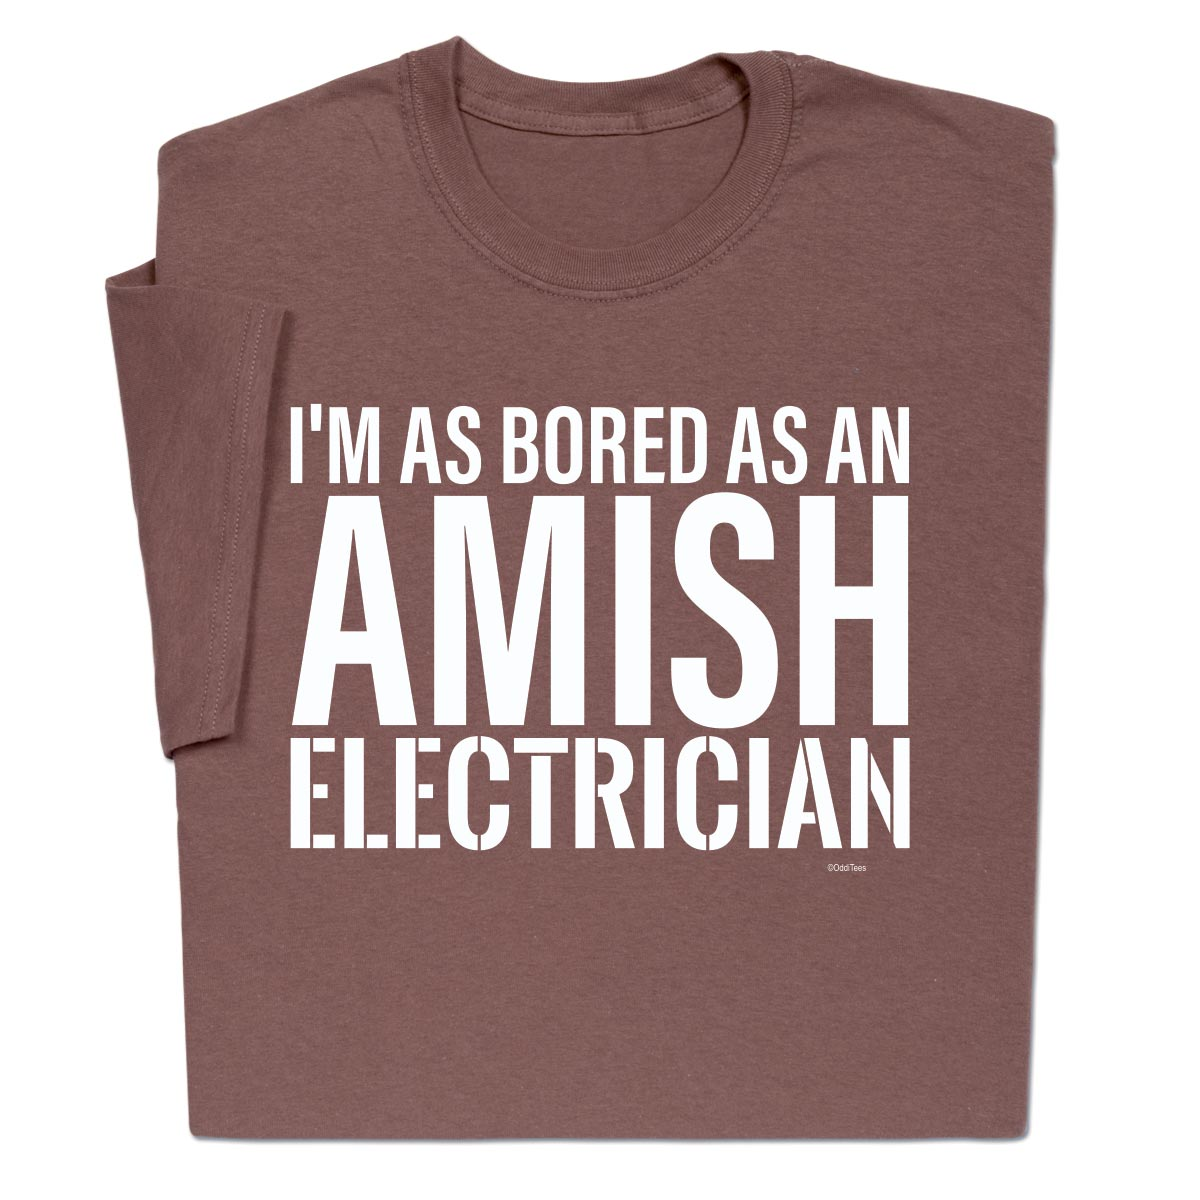 Amish Electrician Funny T Shirt For Men Women